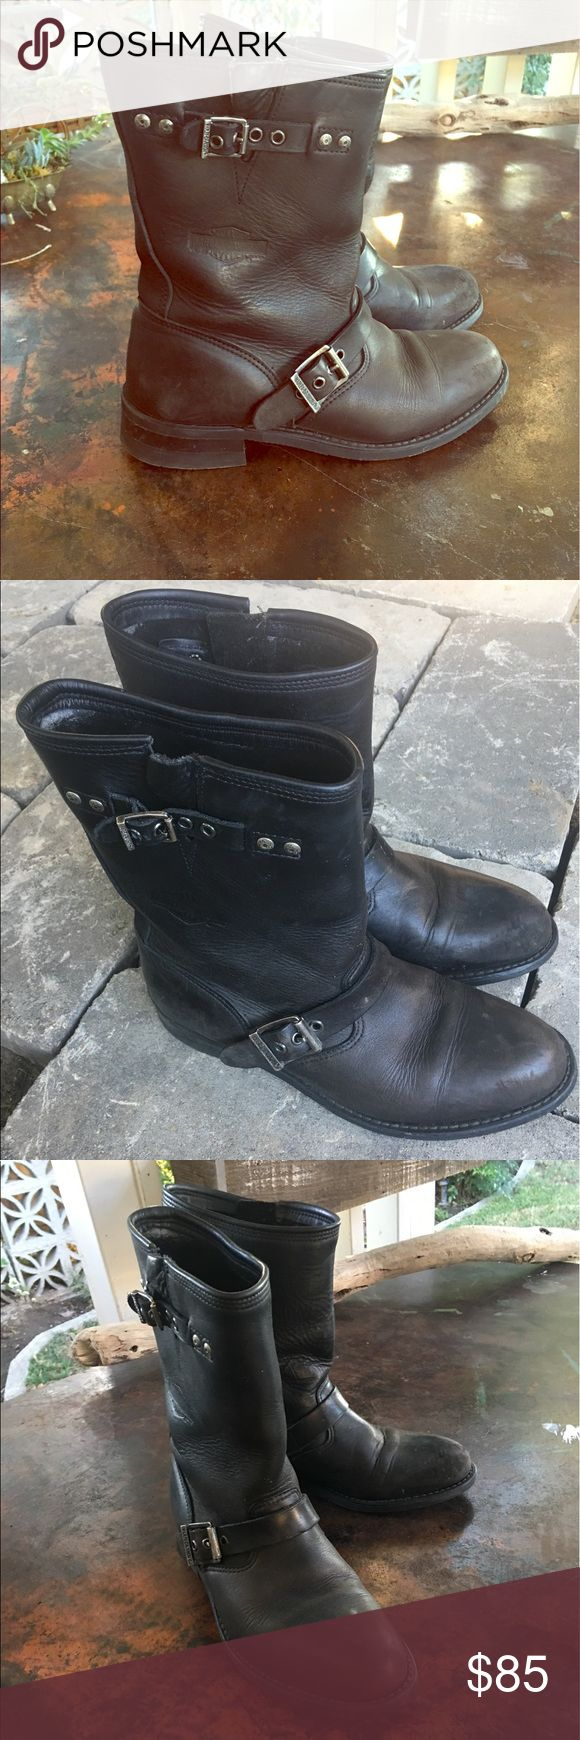 Harley Davidson boots Great pair of black leather Harley Davidson slip on boots with adjustable straps, hardly any wear on the sole, the leather is a little distressed but overall these are in fantastic condition!. Men's size 9- women 10 1/2 Harley-Davidson Shoes Boots